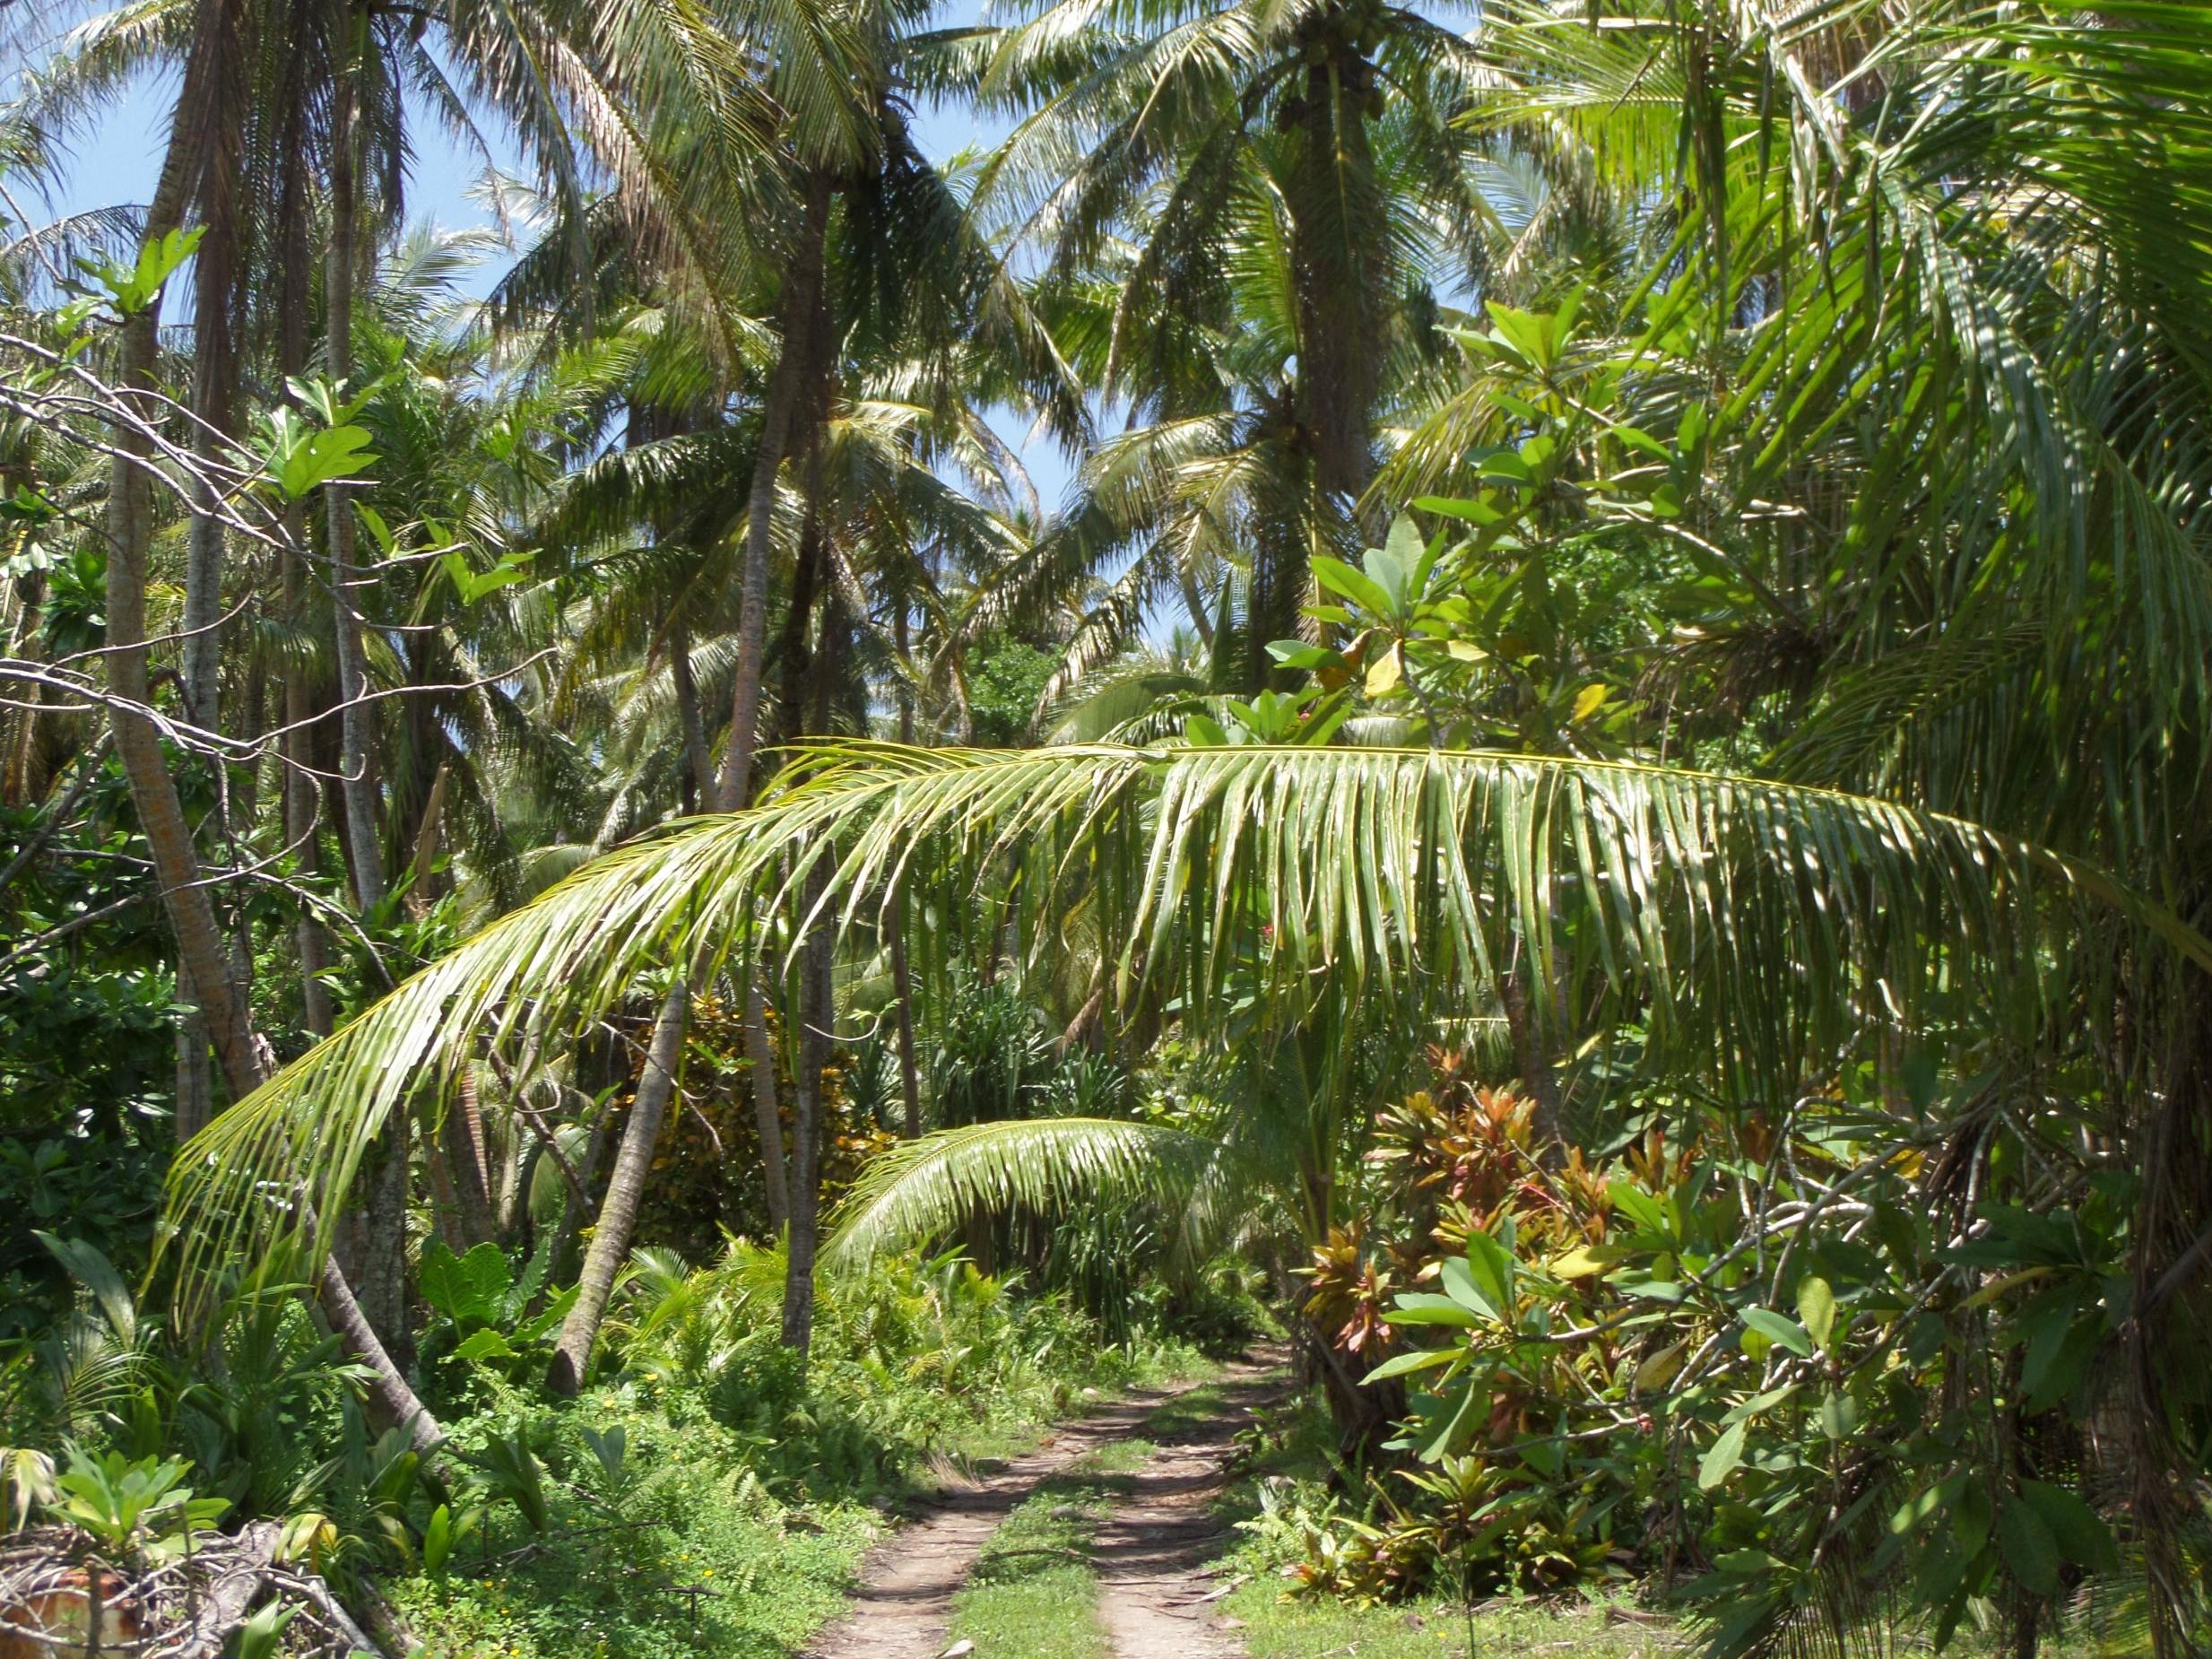 Tropical island forest on Guam to be dug up for military firing range